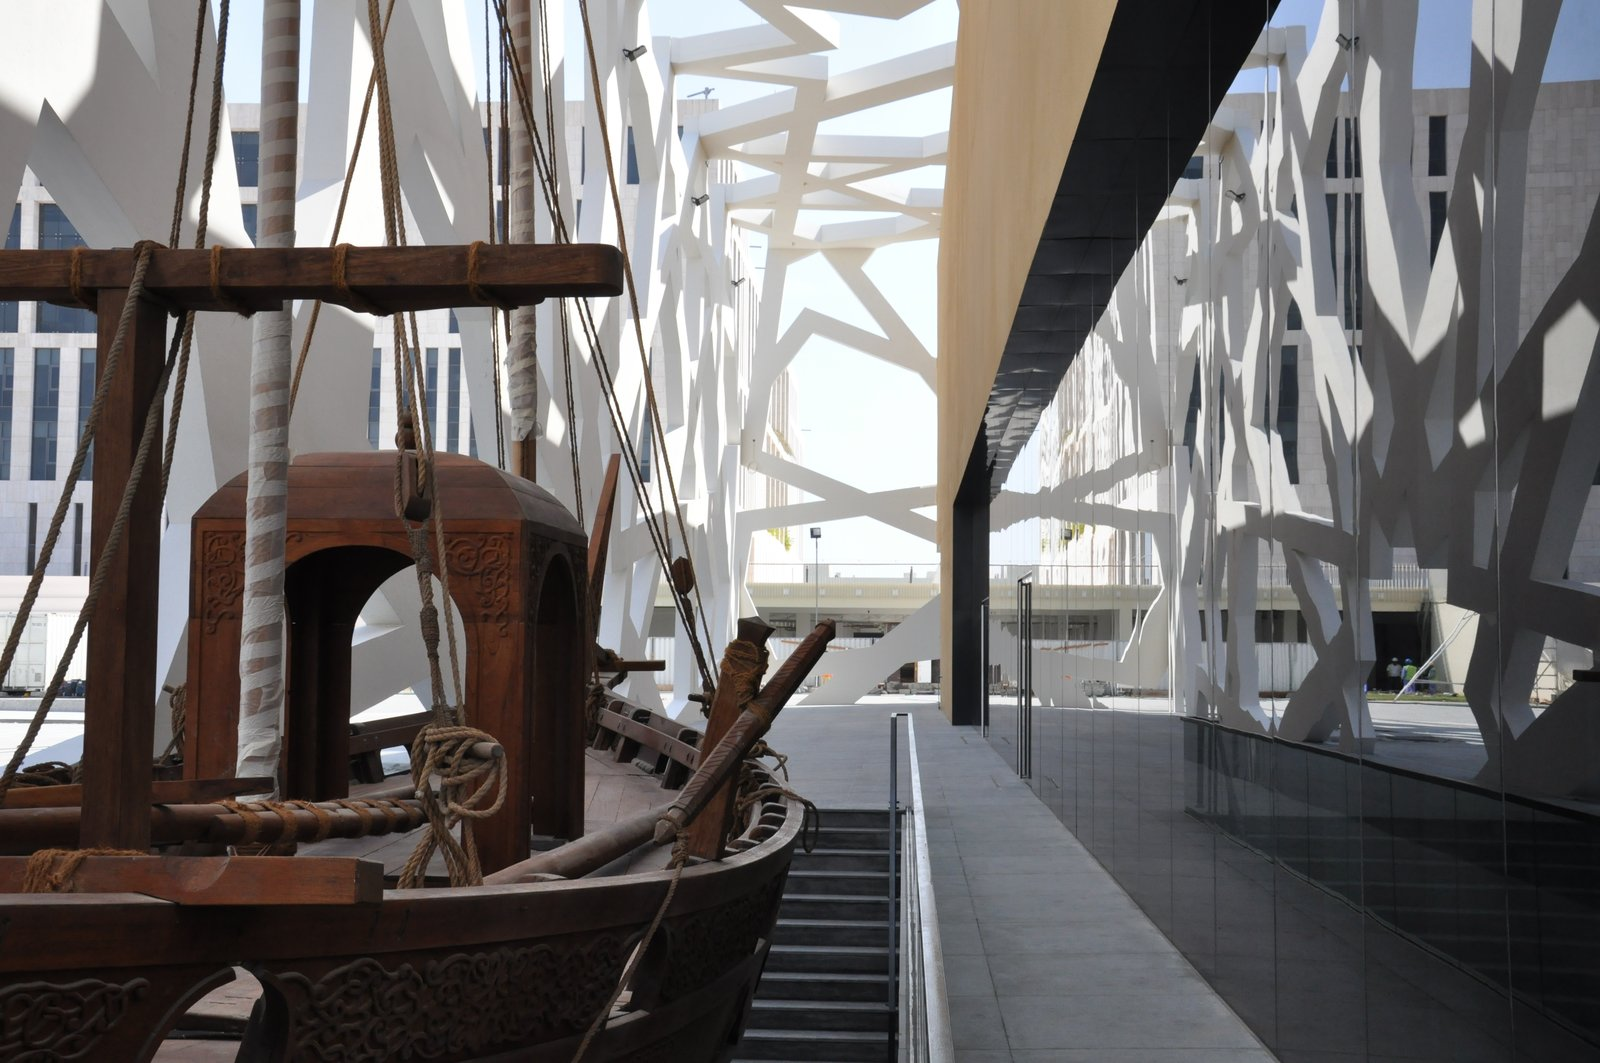 Internal dhow water feature  Conference and Exhibition Hall at GUtech by Hoehler + alSalmy